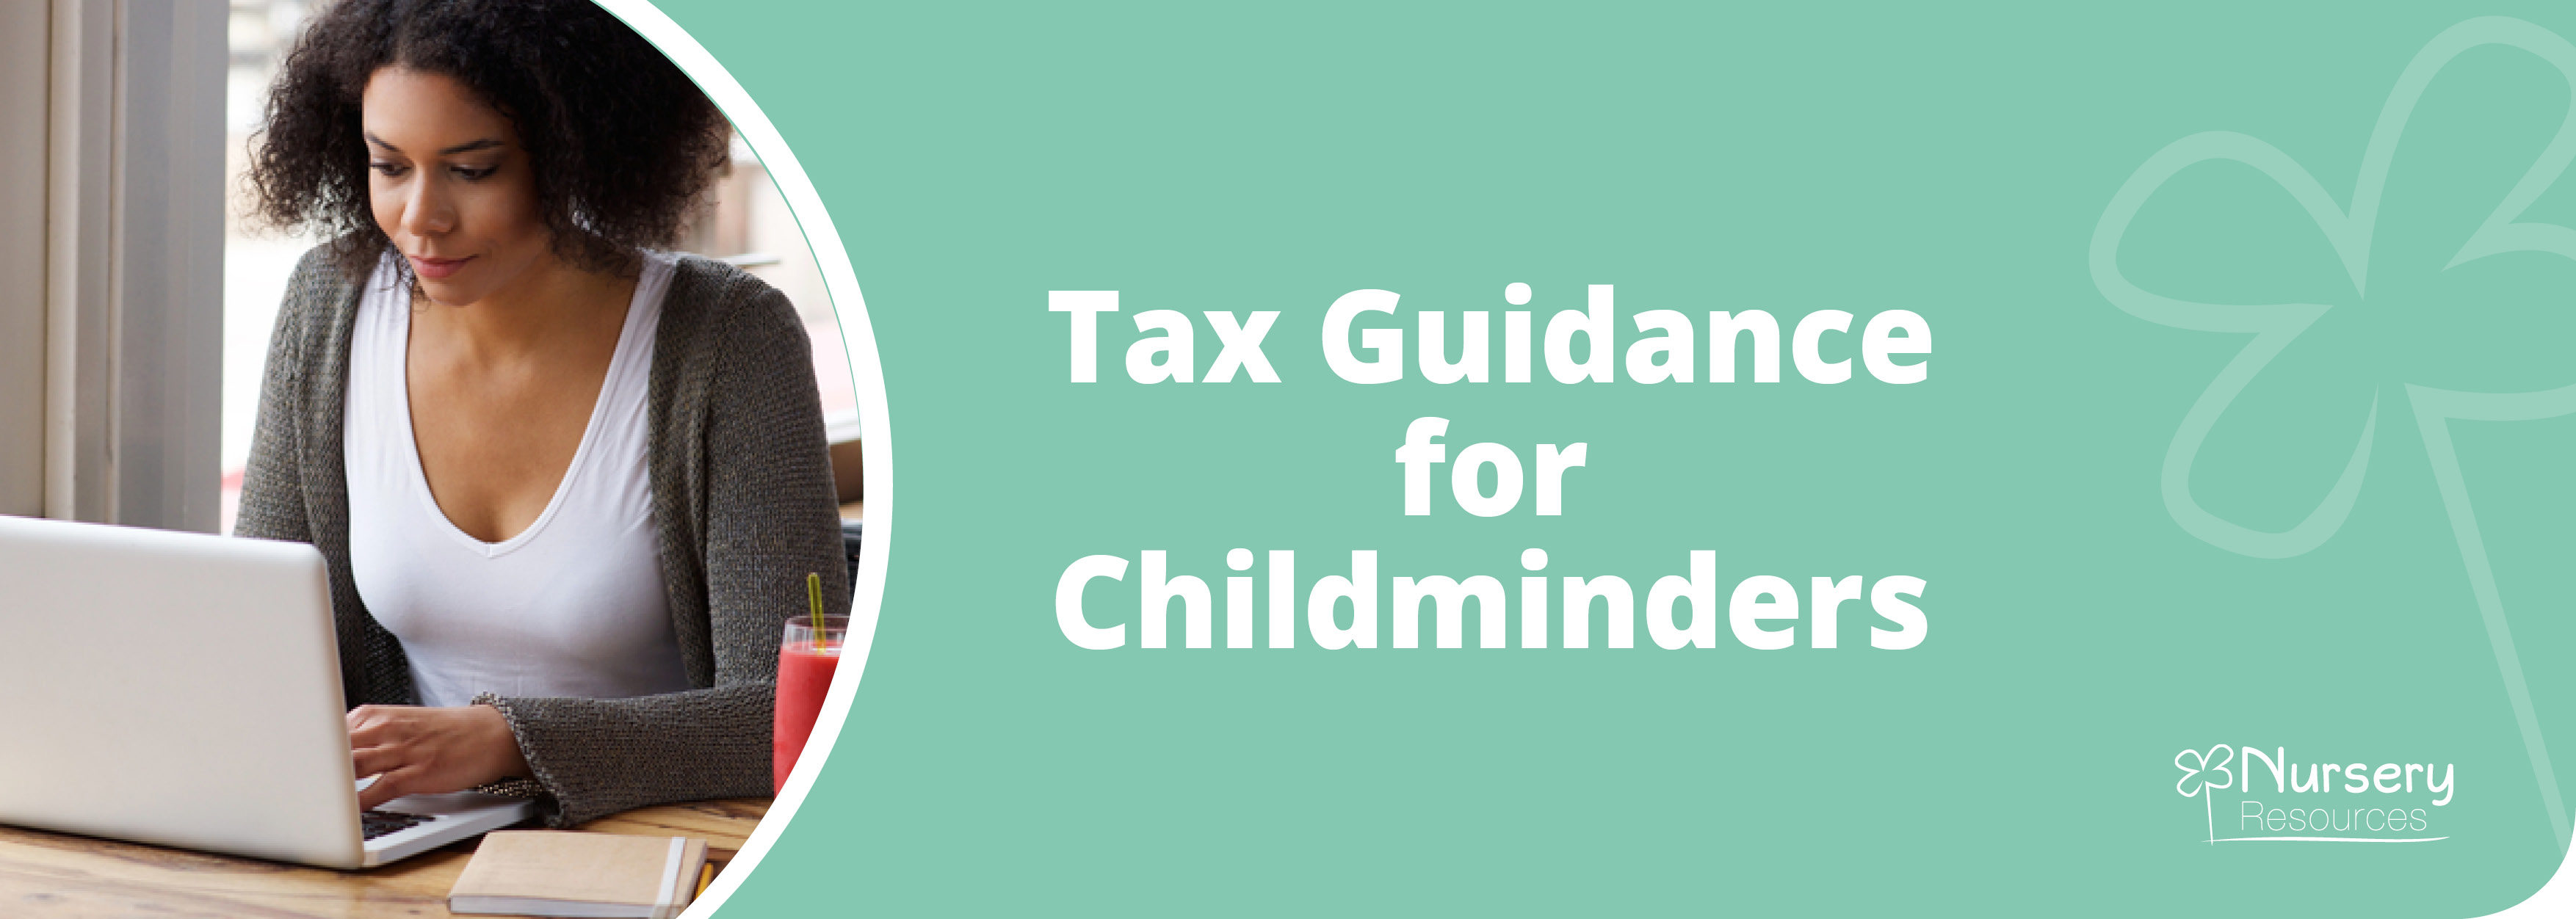 tax guidance for childminders